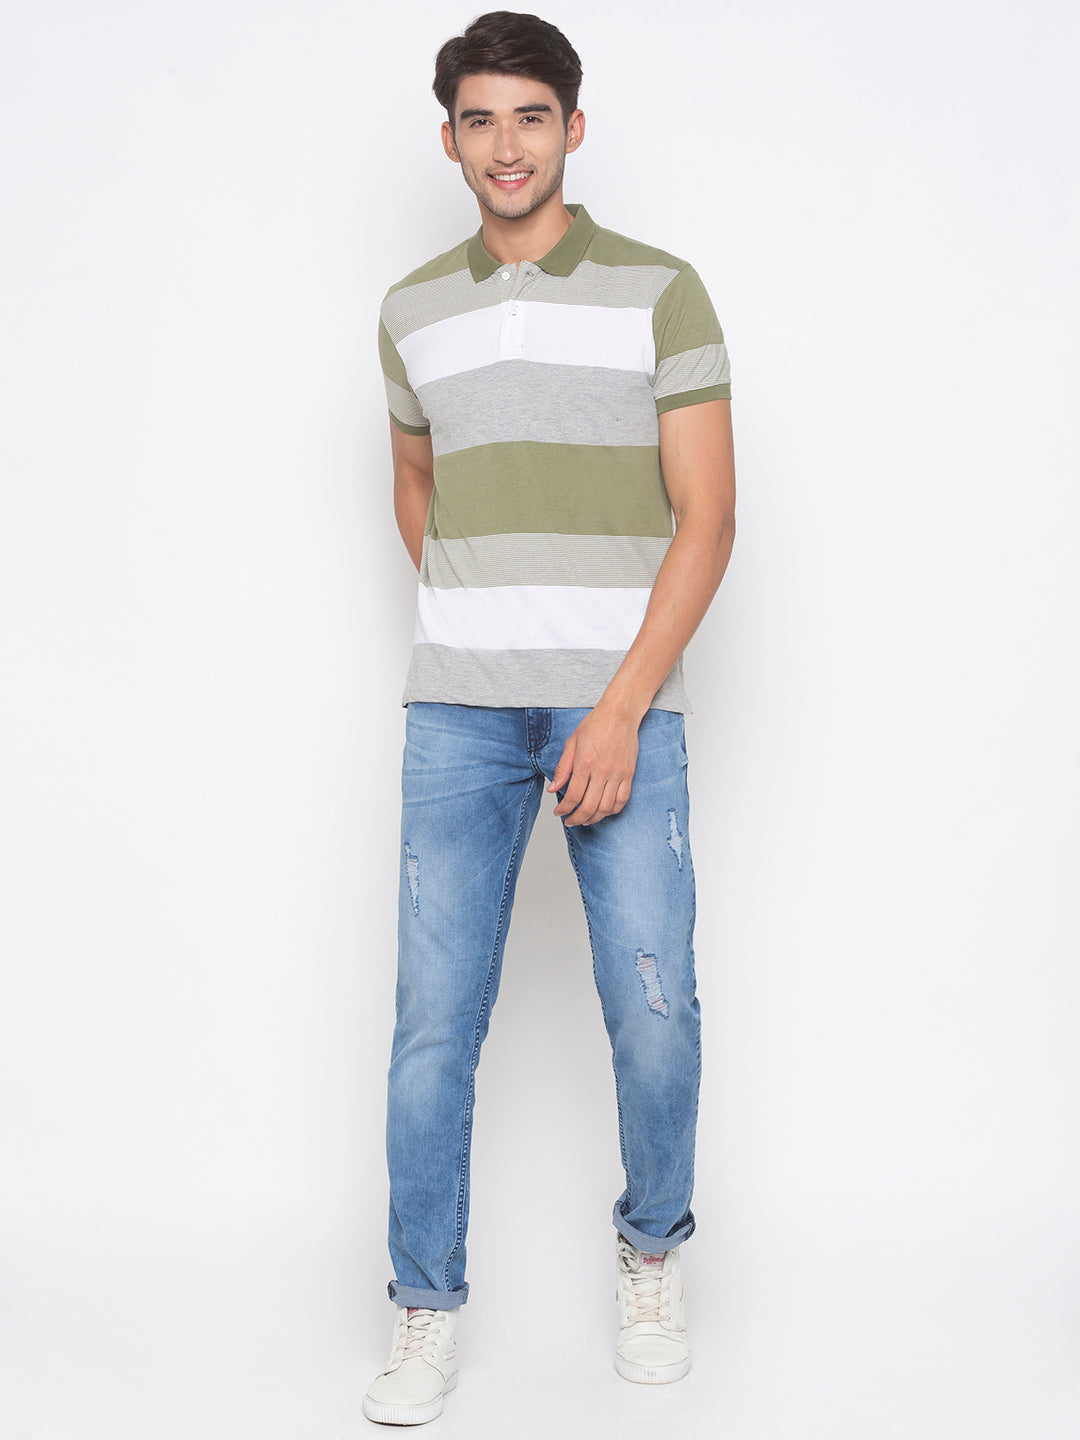 Globus Olive & White Striped T-Shirt-4